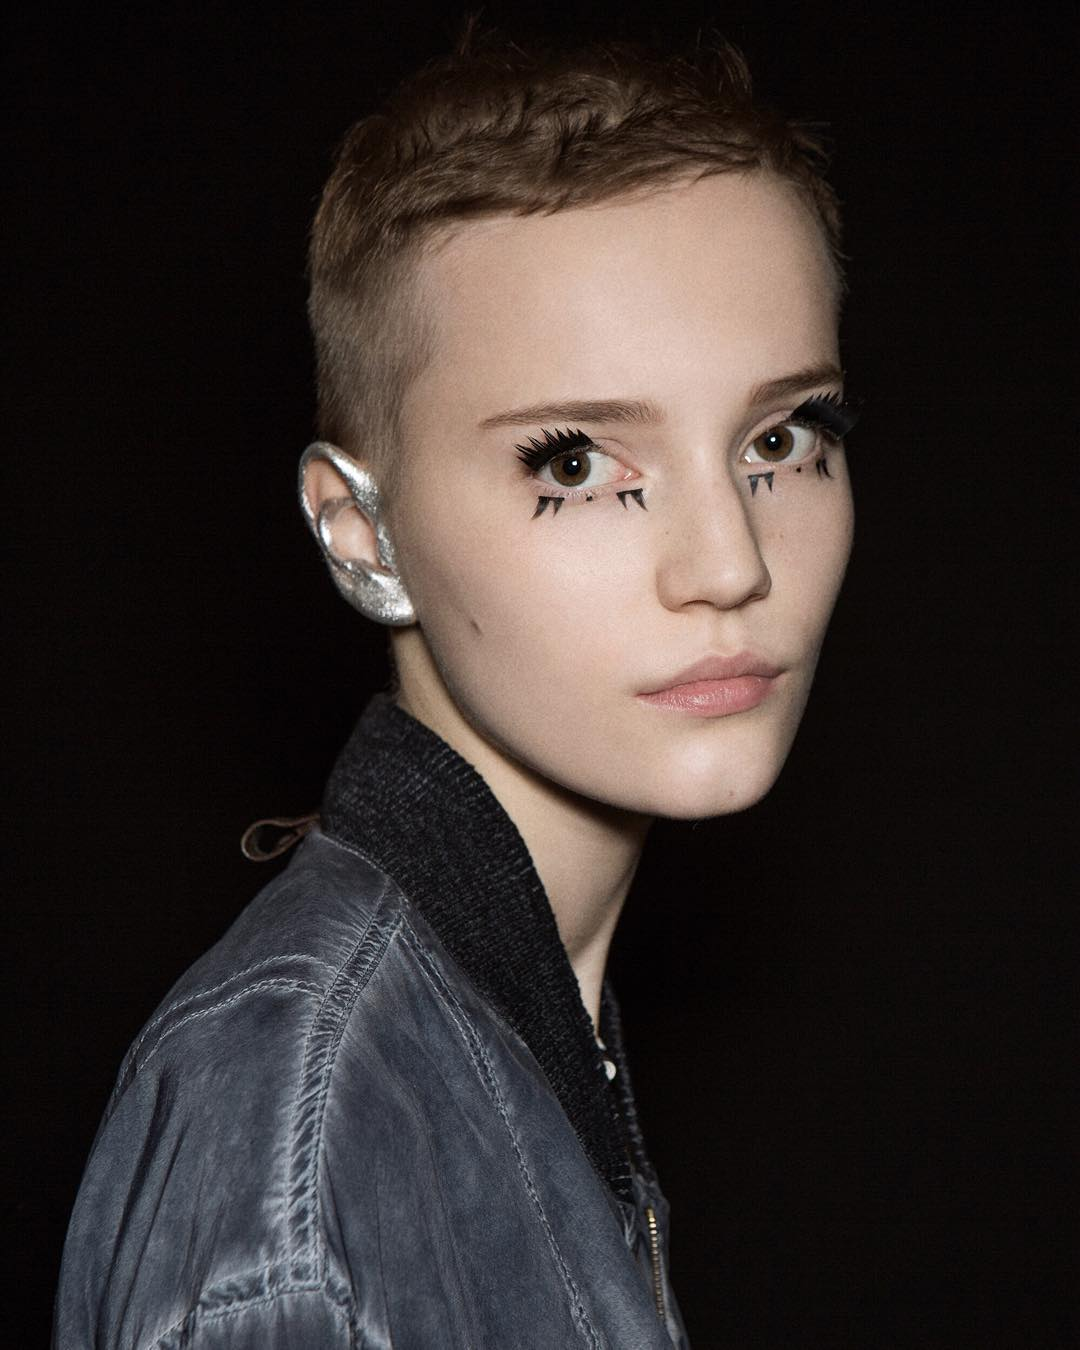 louis-vuitton-silver-ear-make-up-beauty-runway-ss16-fashion-oracle-fox